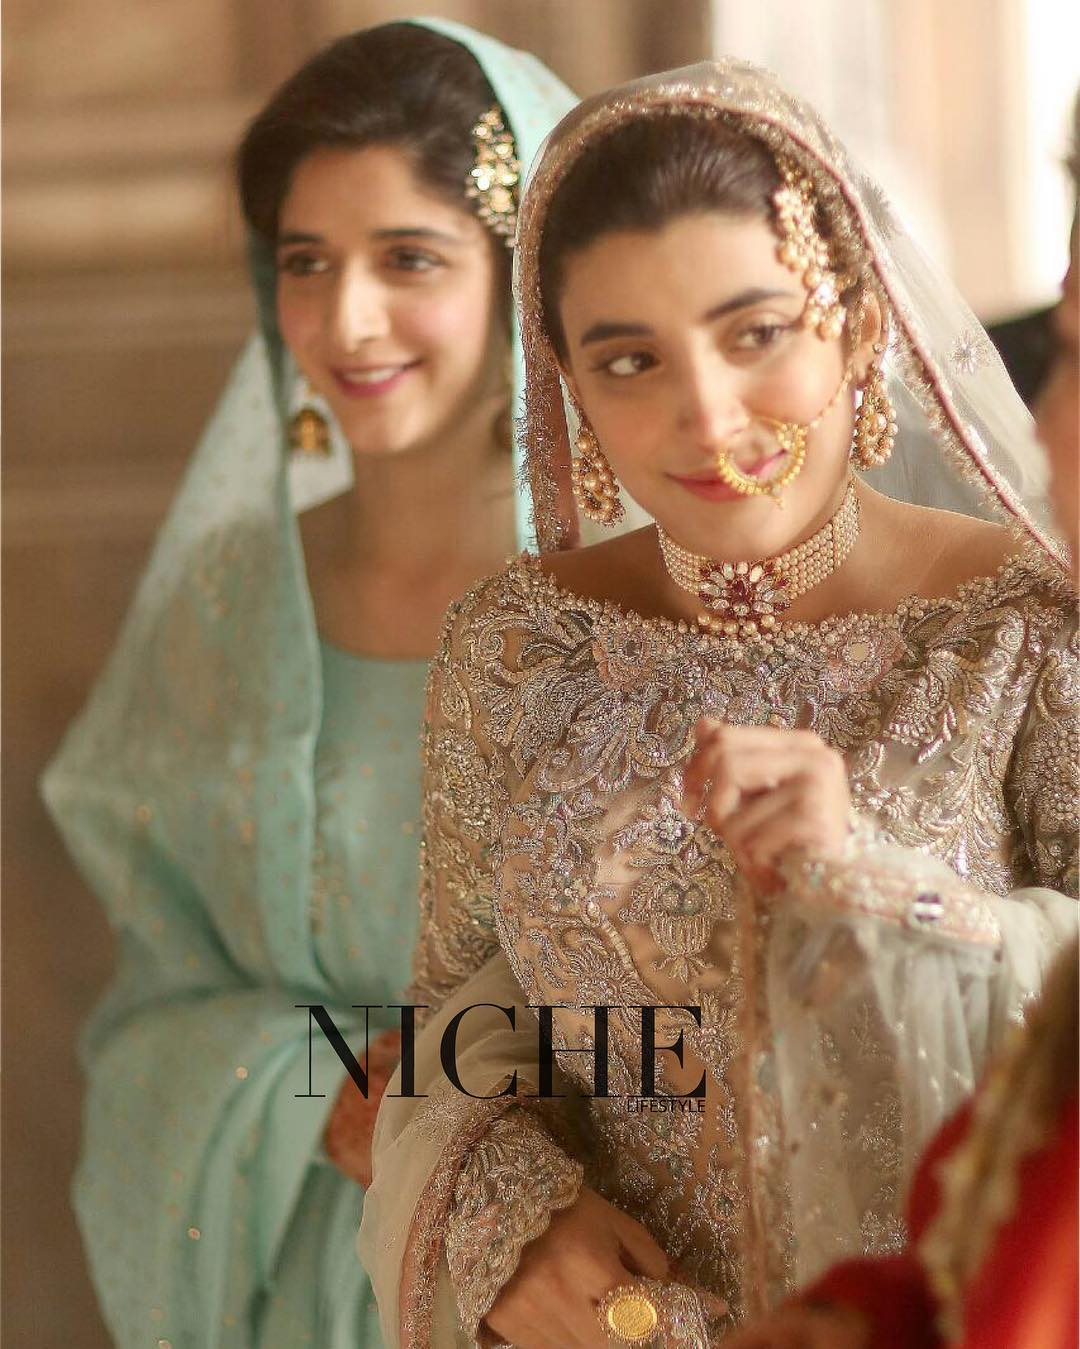 latest photos of urwa hocane-webstudy.pk